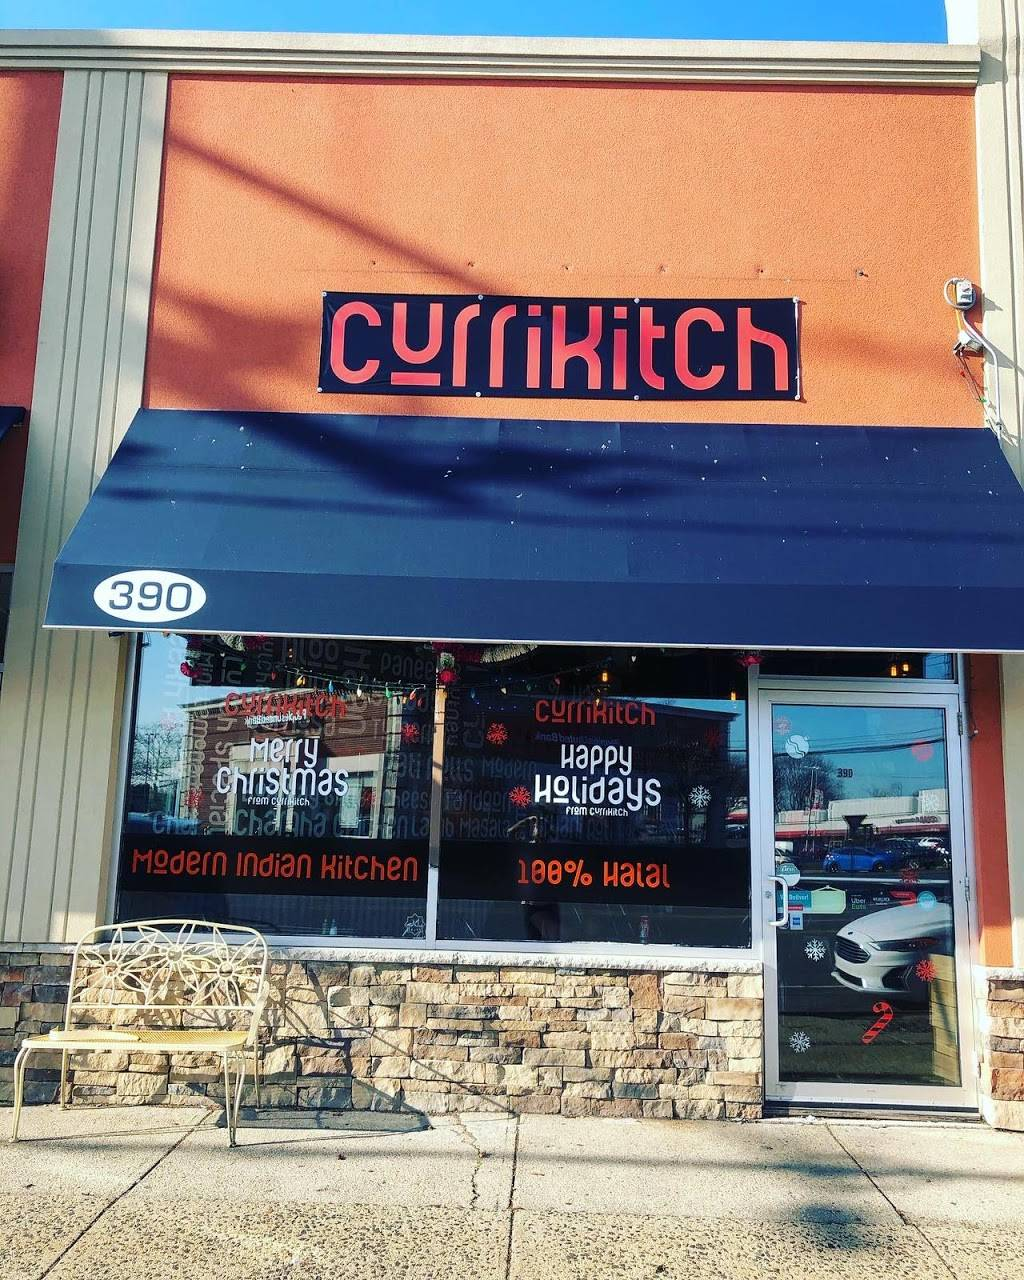 Currikitch Indian Kitchen | restaurant | 390 Woodbury Rd, Hicksville, NY 11801, USA | 5164905501 OR +1 516-490-5501